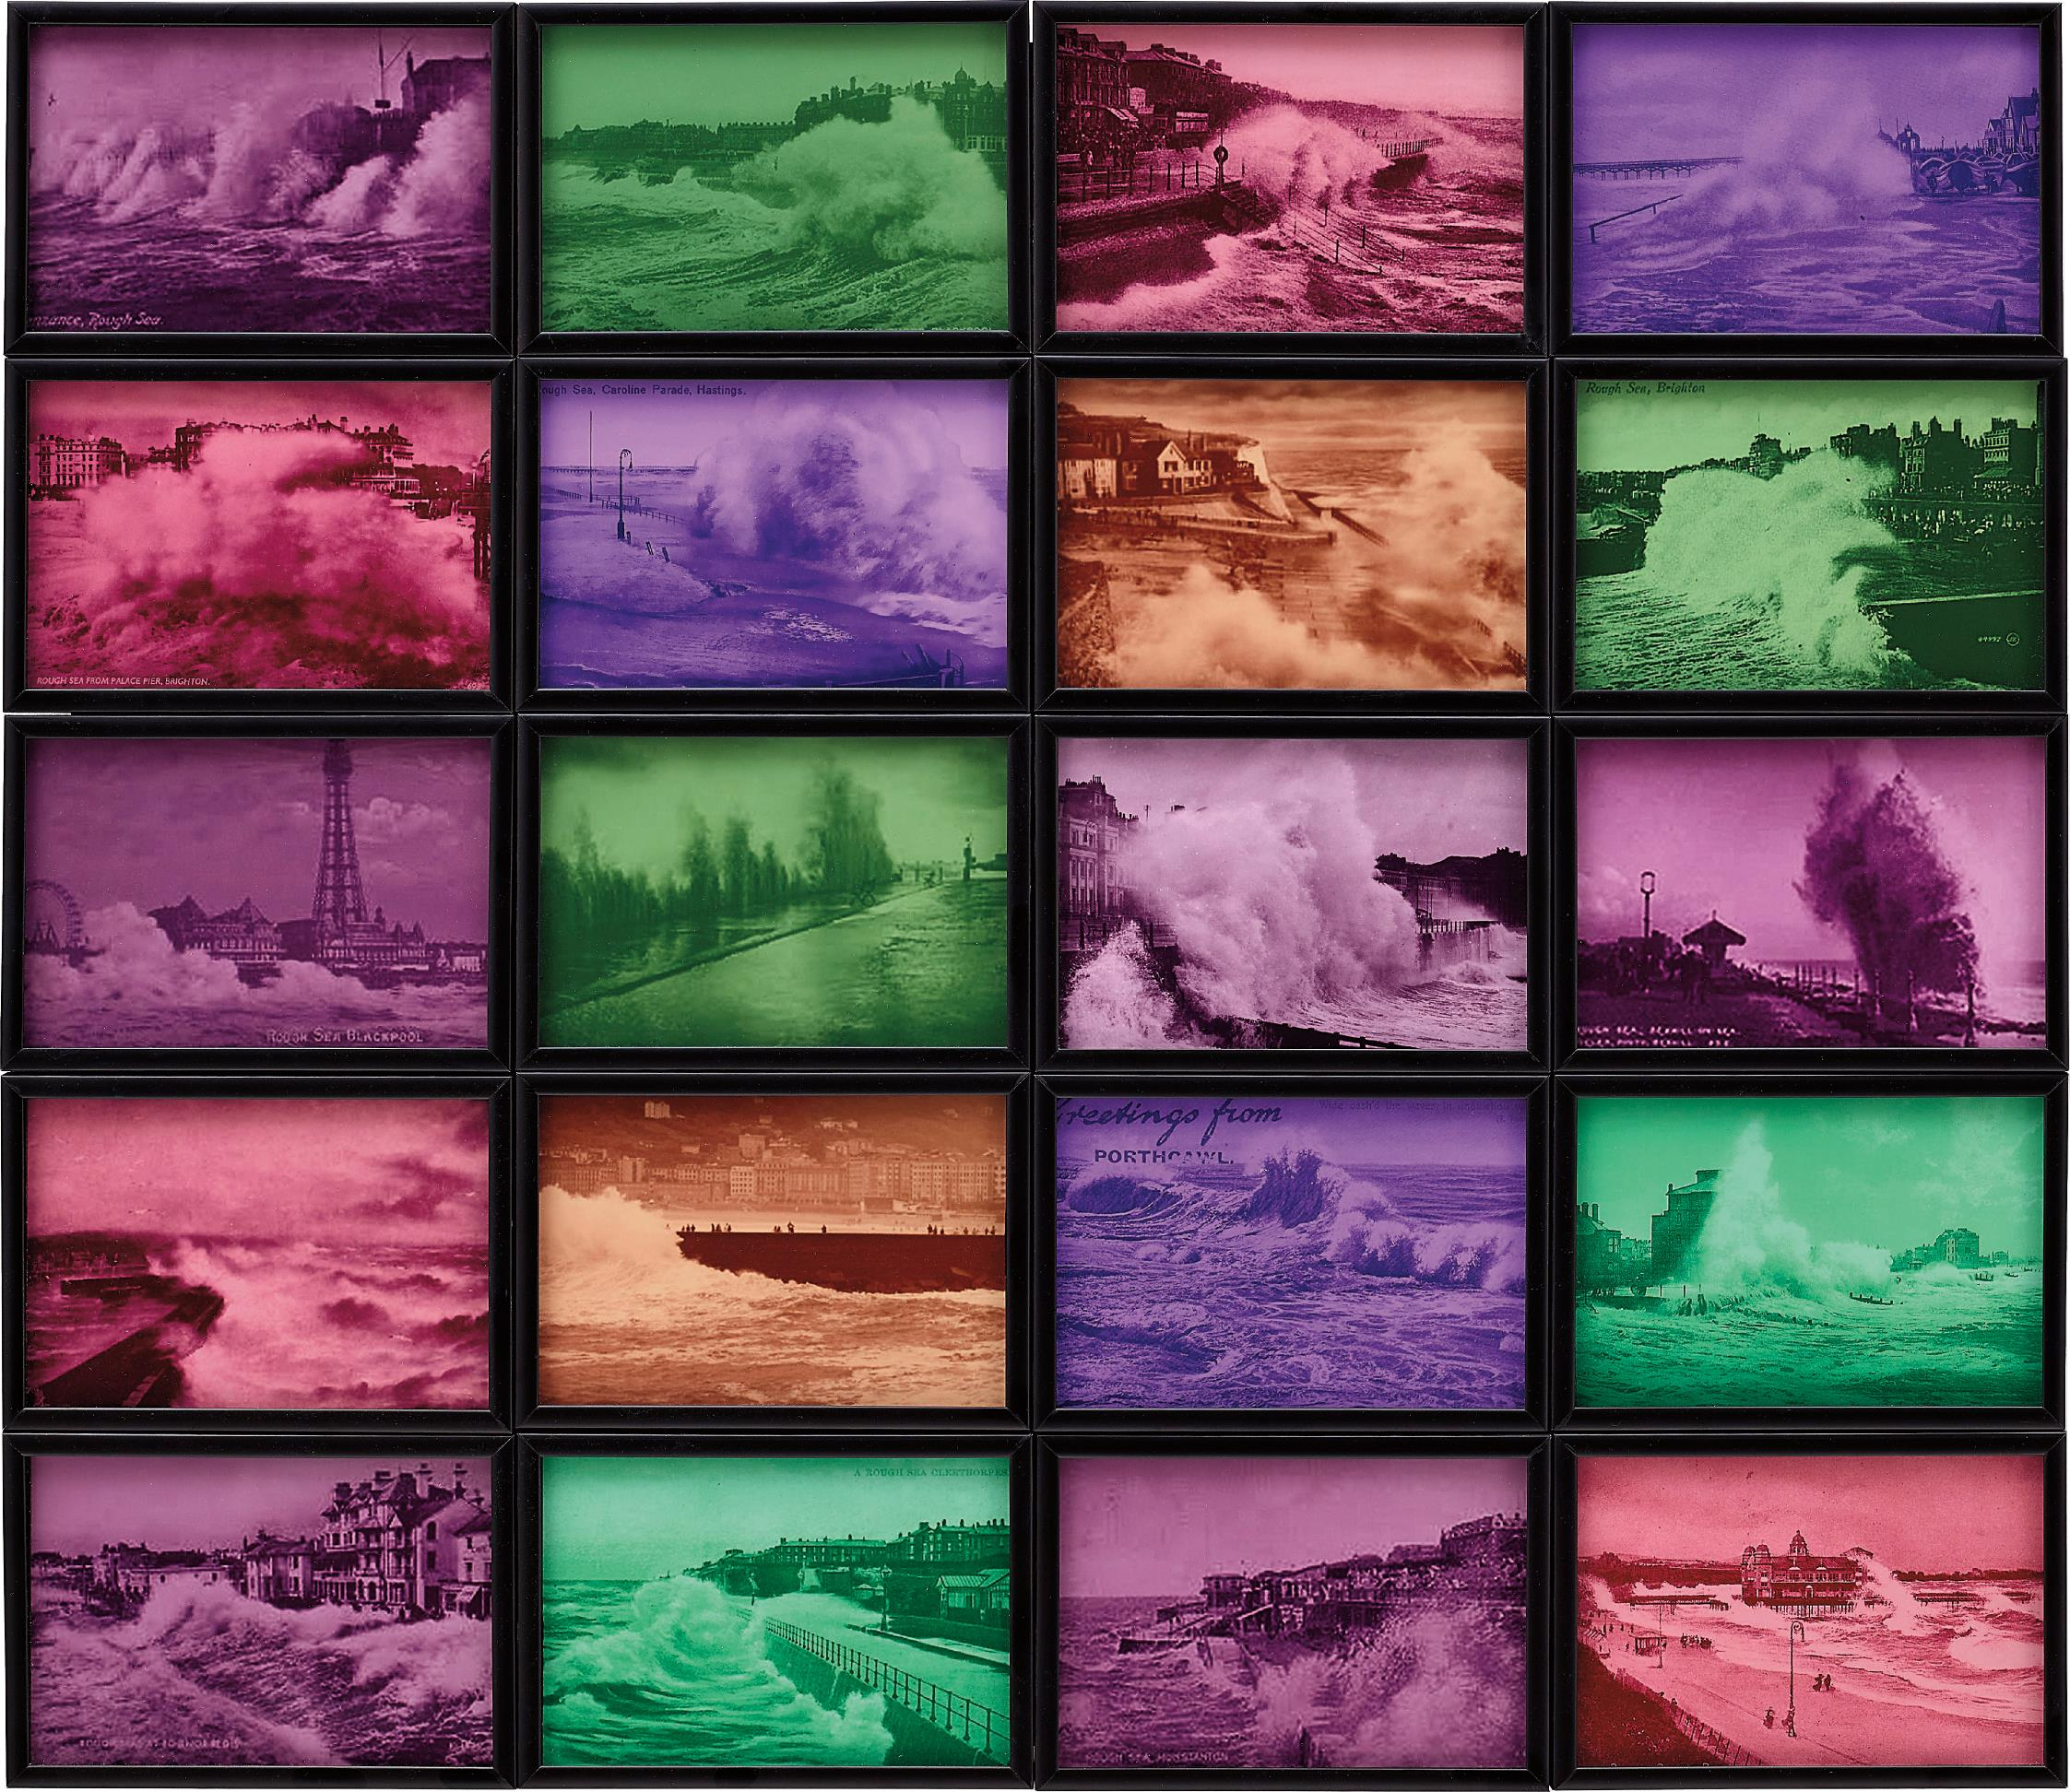 Susan Hiller-Rough Version-2014